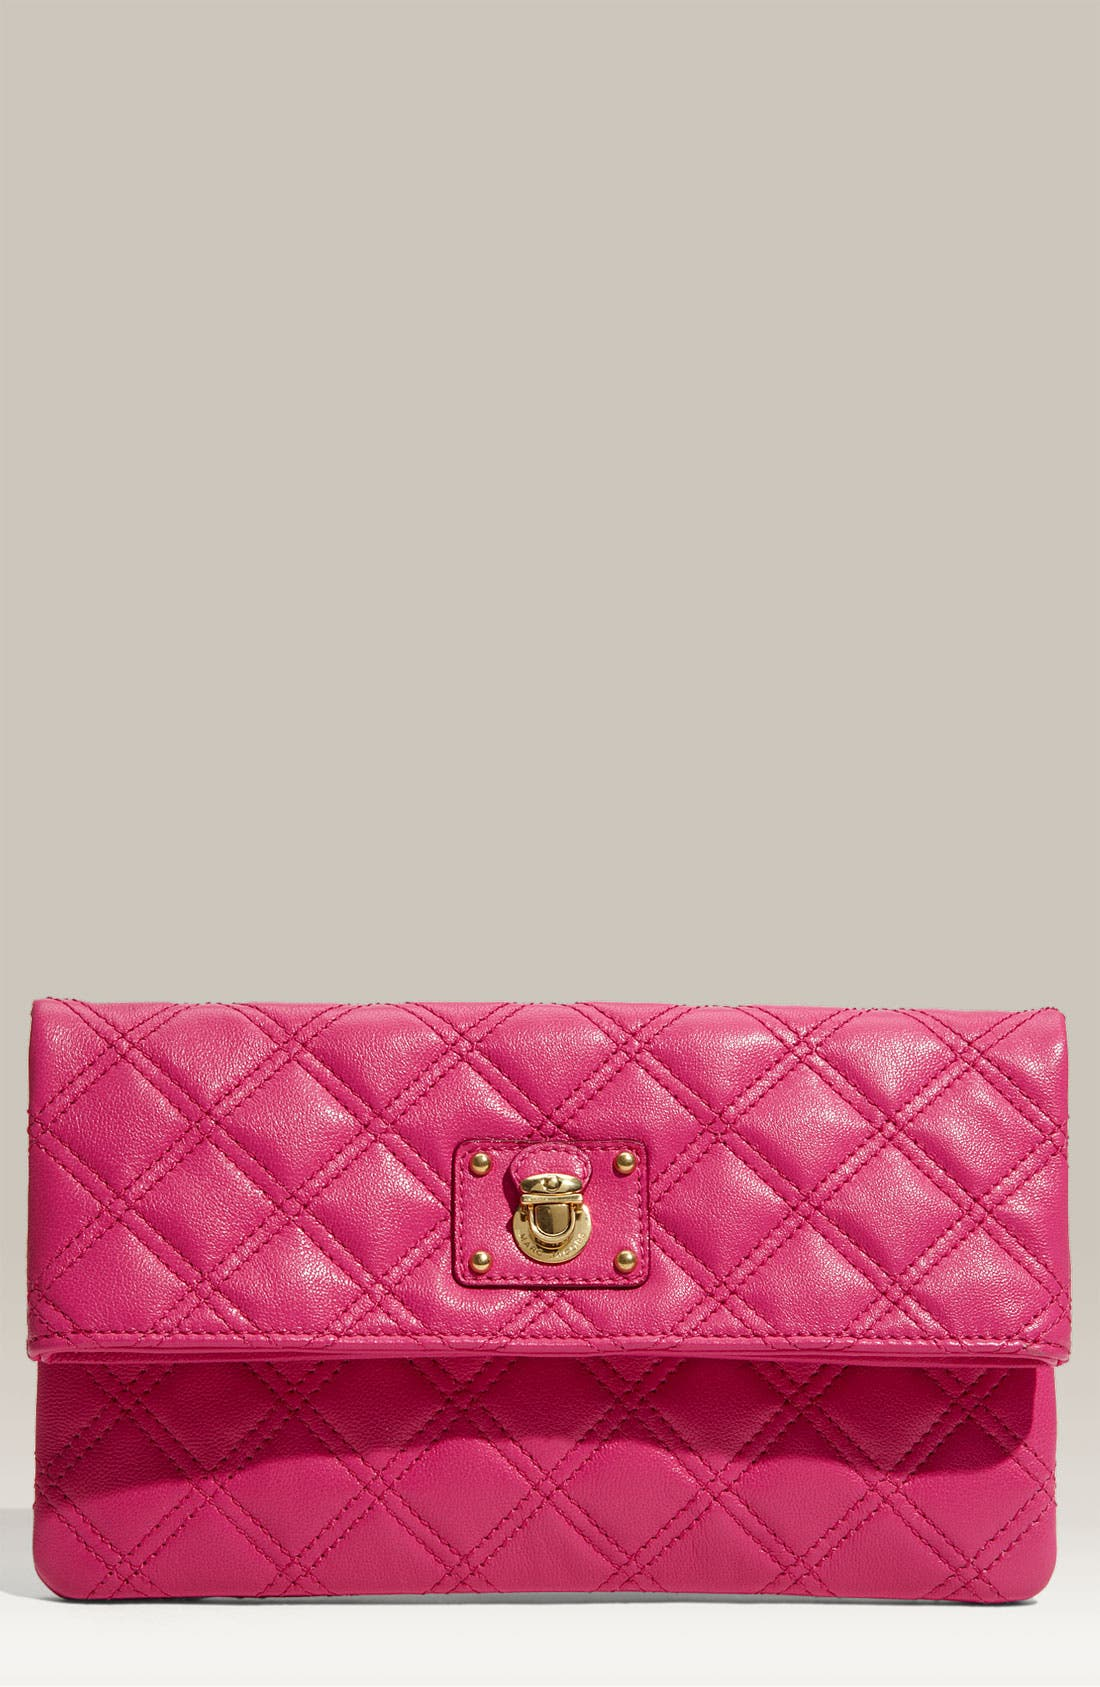 Alternate Image 1 Selected - MARC JACOBS 'Quilting - Eugenie' Leather Clutch